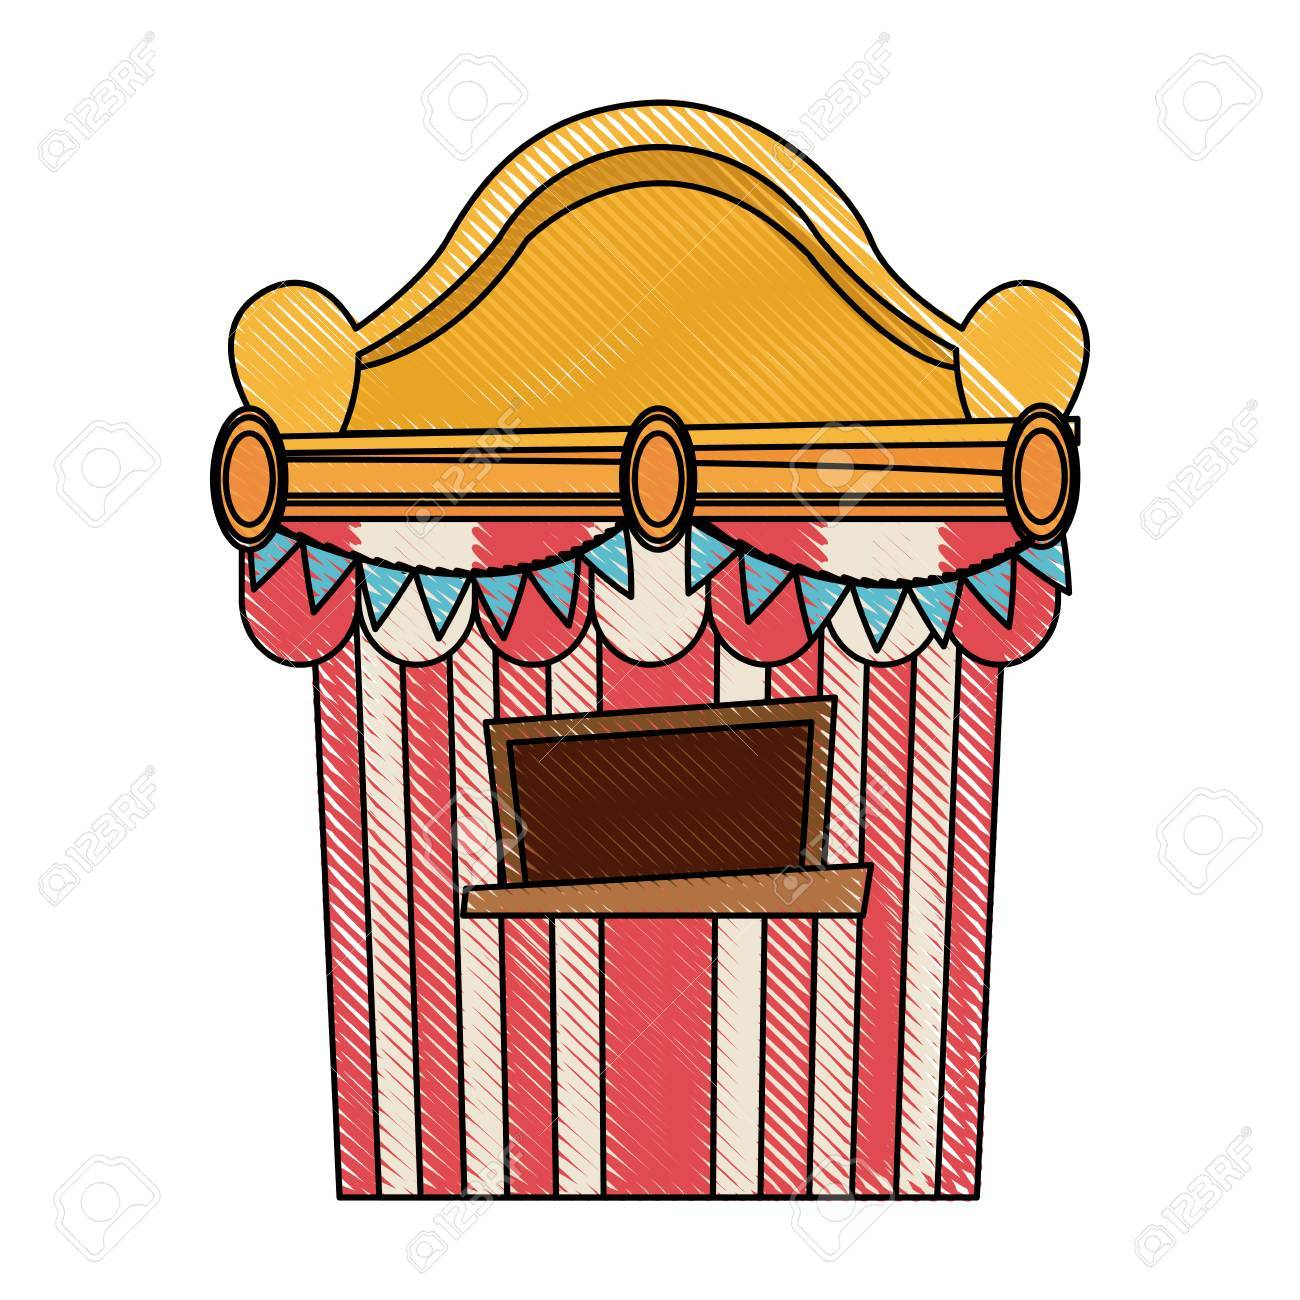 Ticket booth at the carnival entrance image » Clipart Portal.